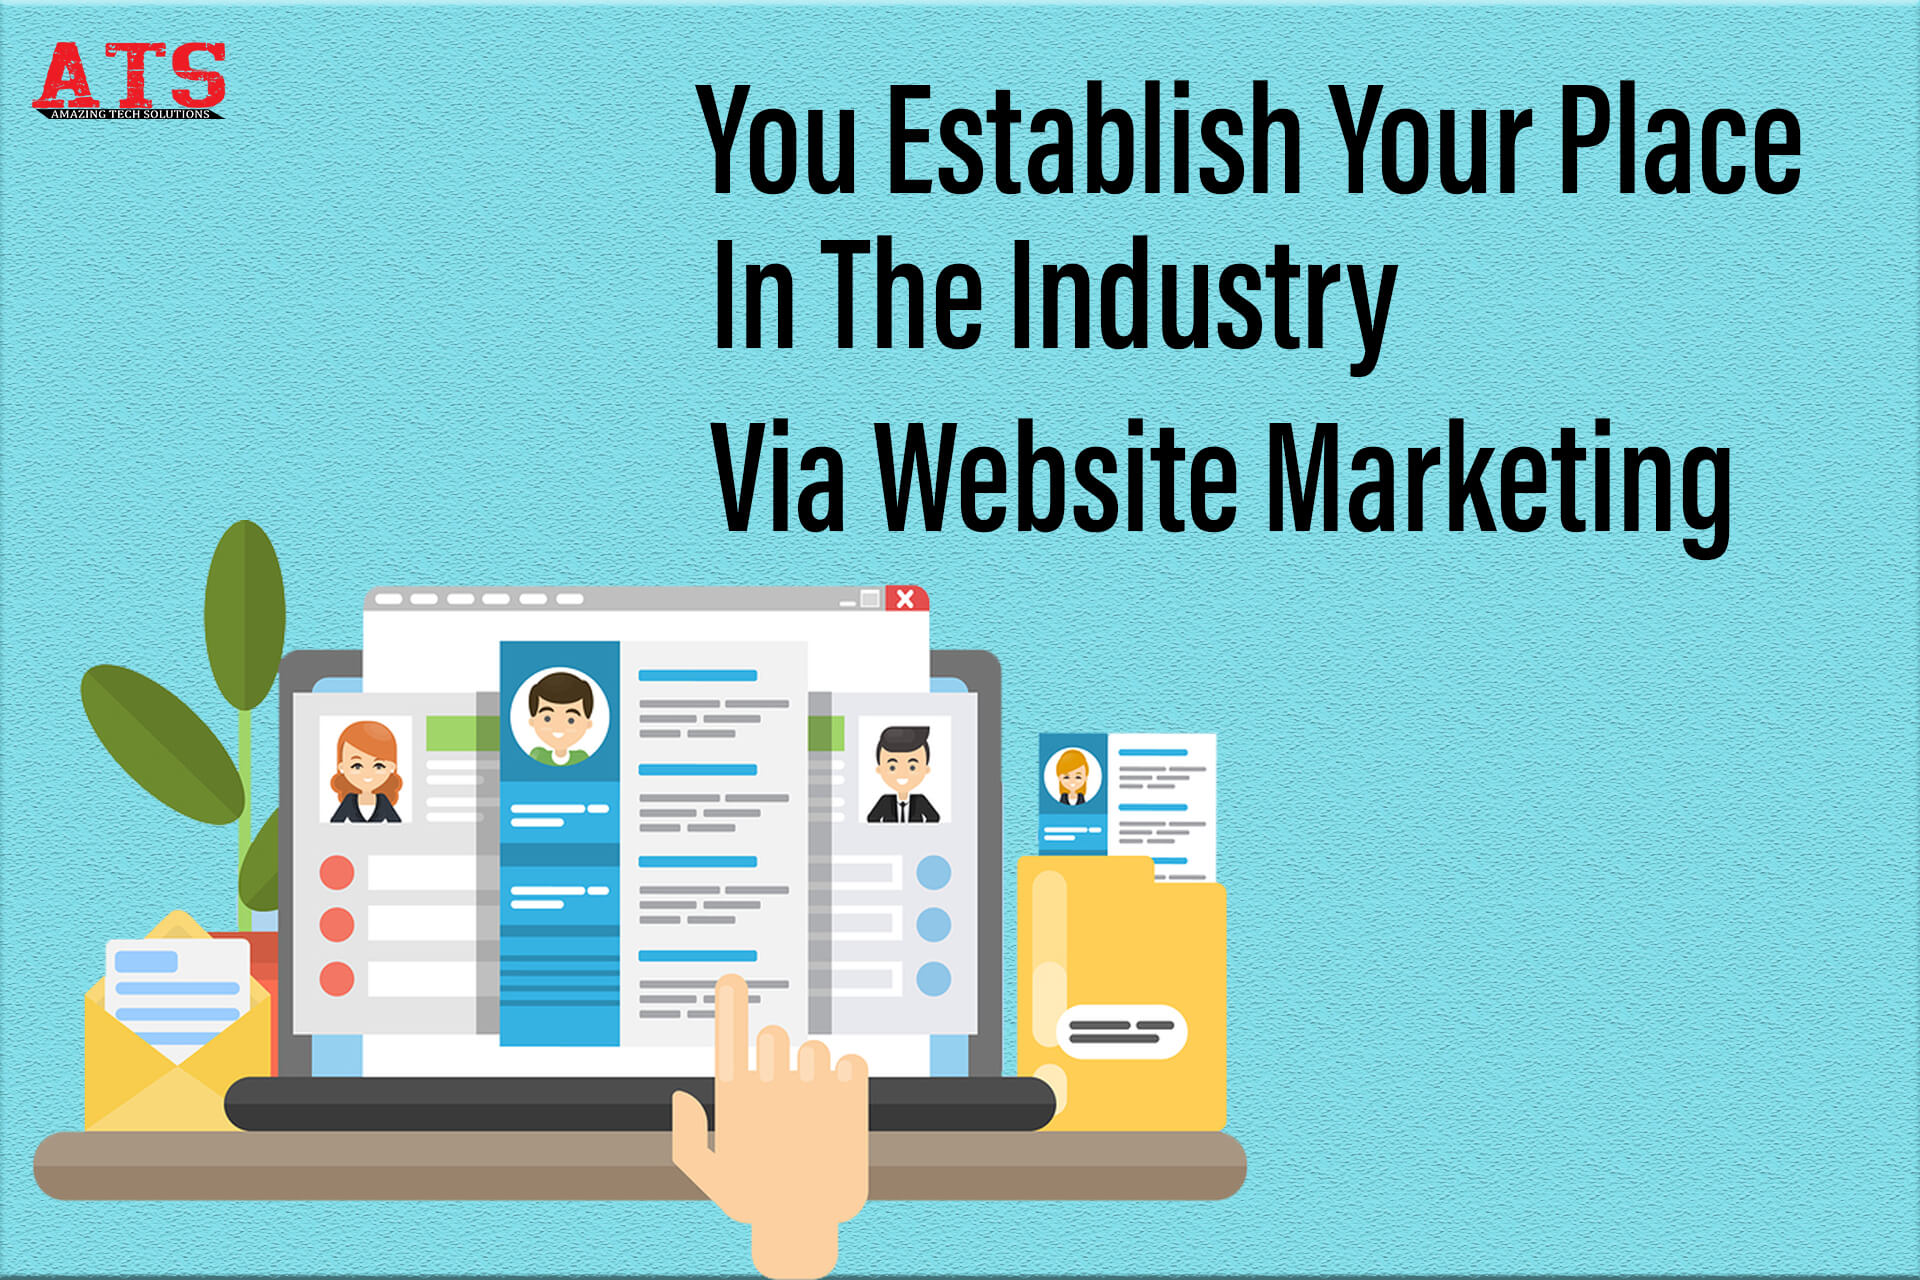 You Can Establish Your Place In The Industry Via Website Marketing